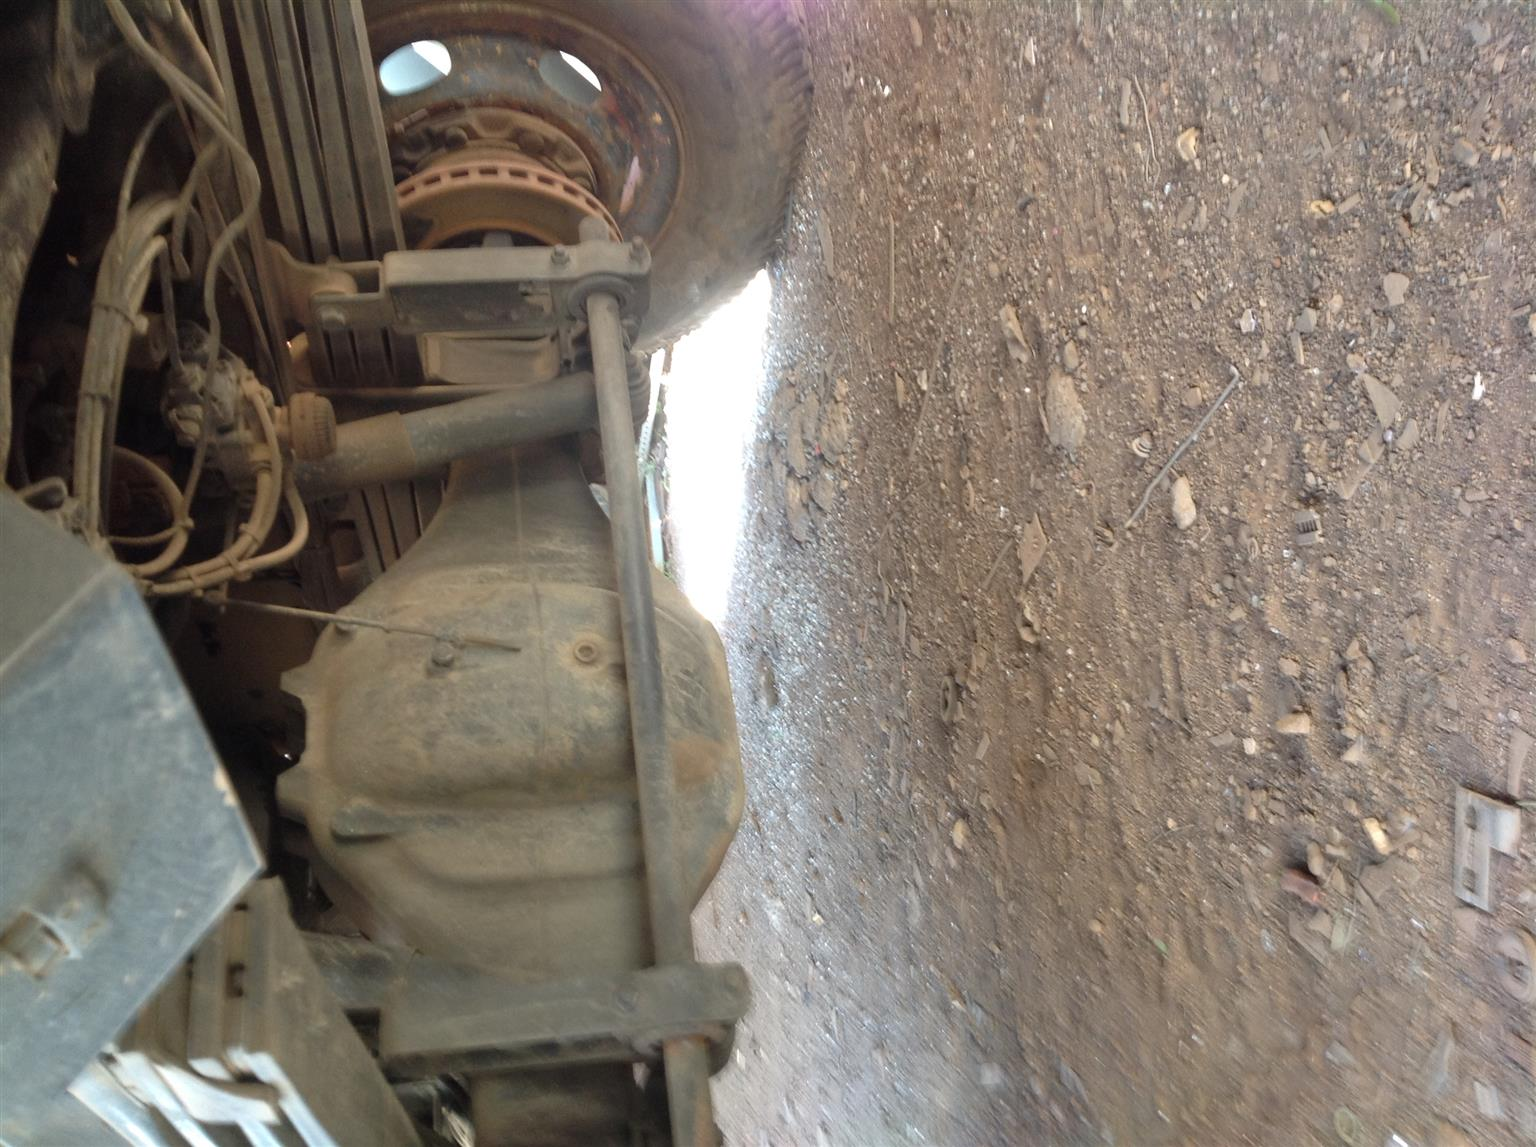 Stripping Mercedes-Benz Atego 2001 for Spares